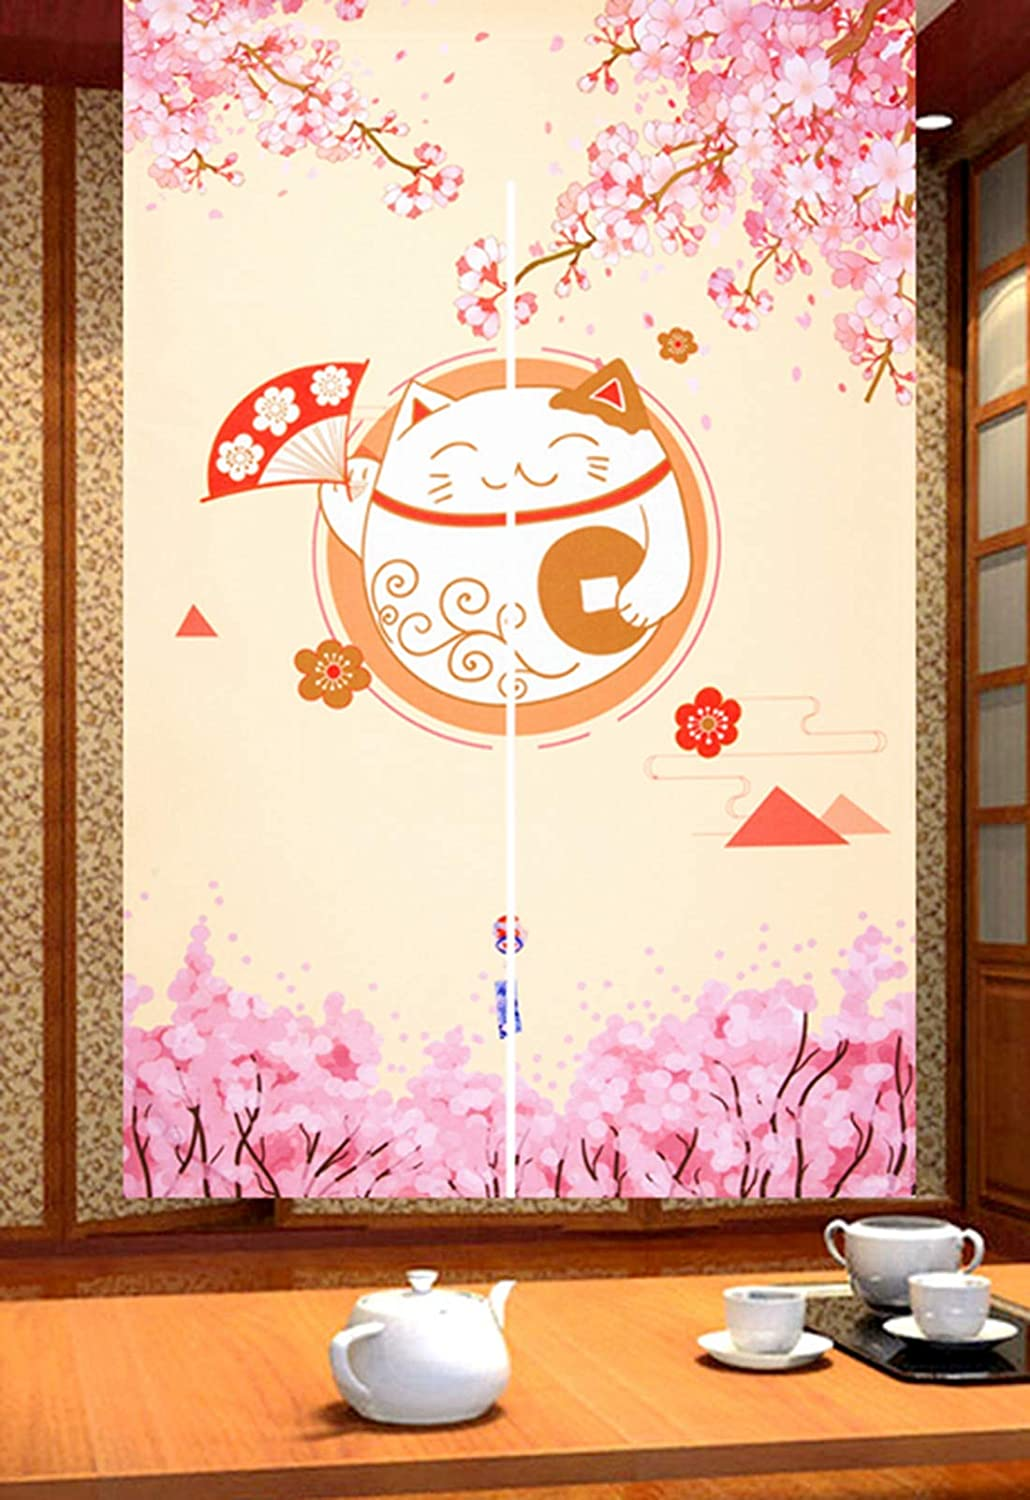 LIGICKY Japanese Style Noren Long Doorway Curtain Fortune Cat & Cherry Blossom Hanging Door Tapestry for Home Decoration, 33.5 x 59 inch